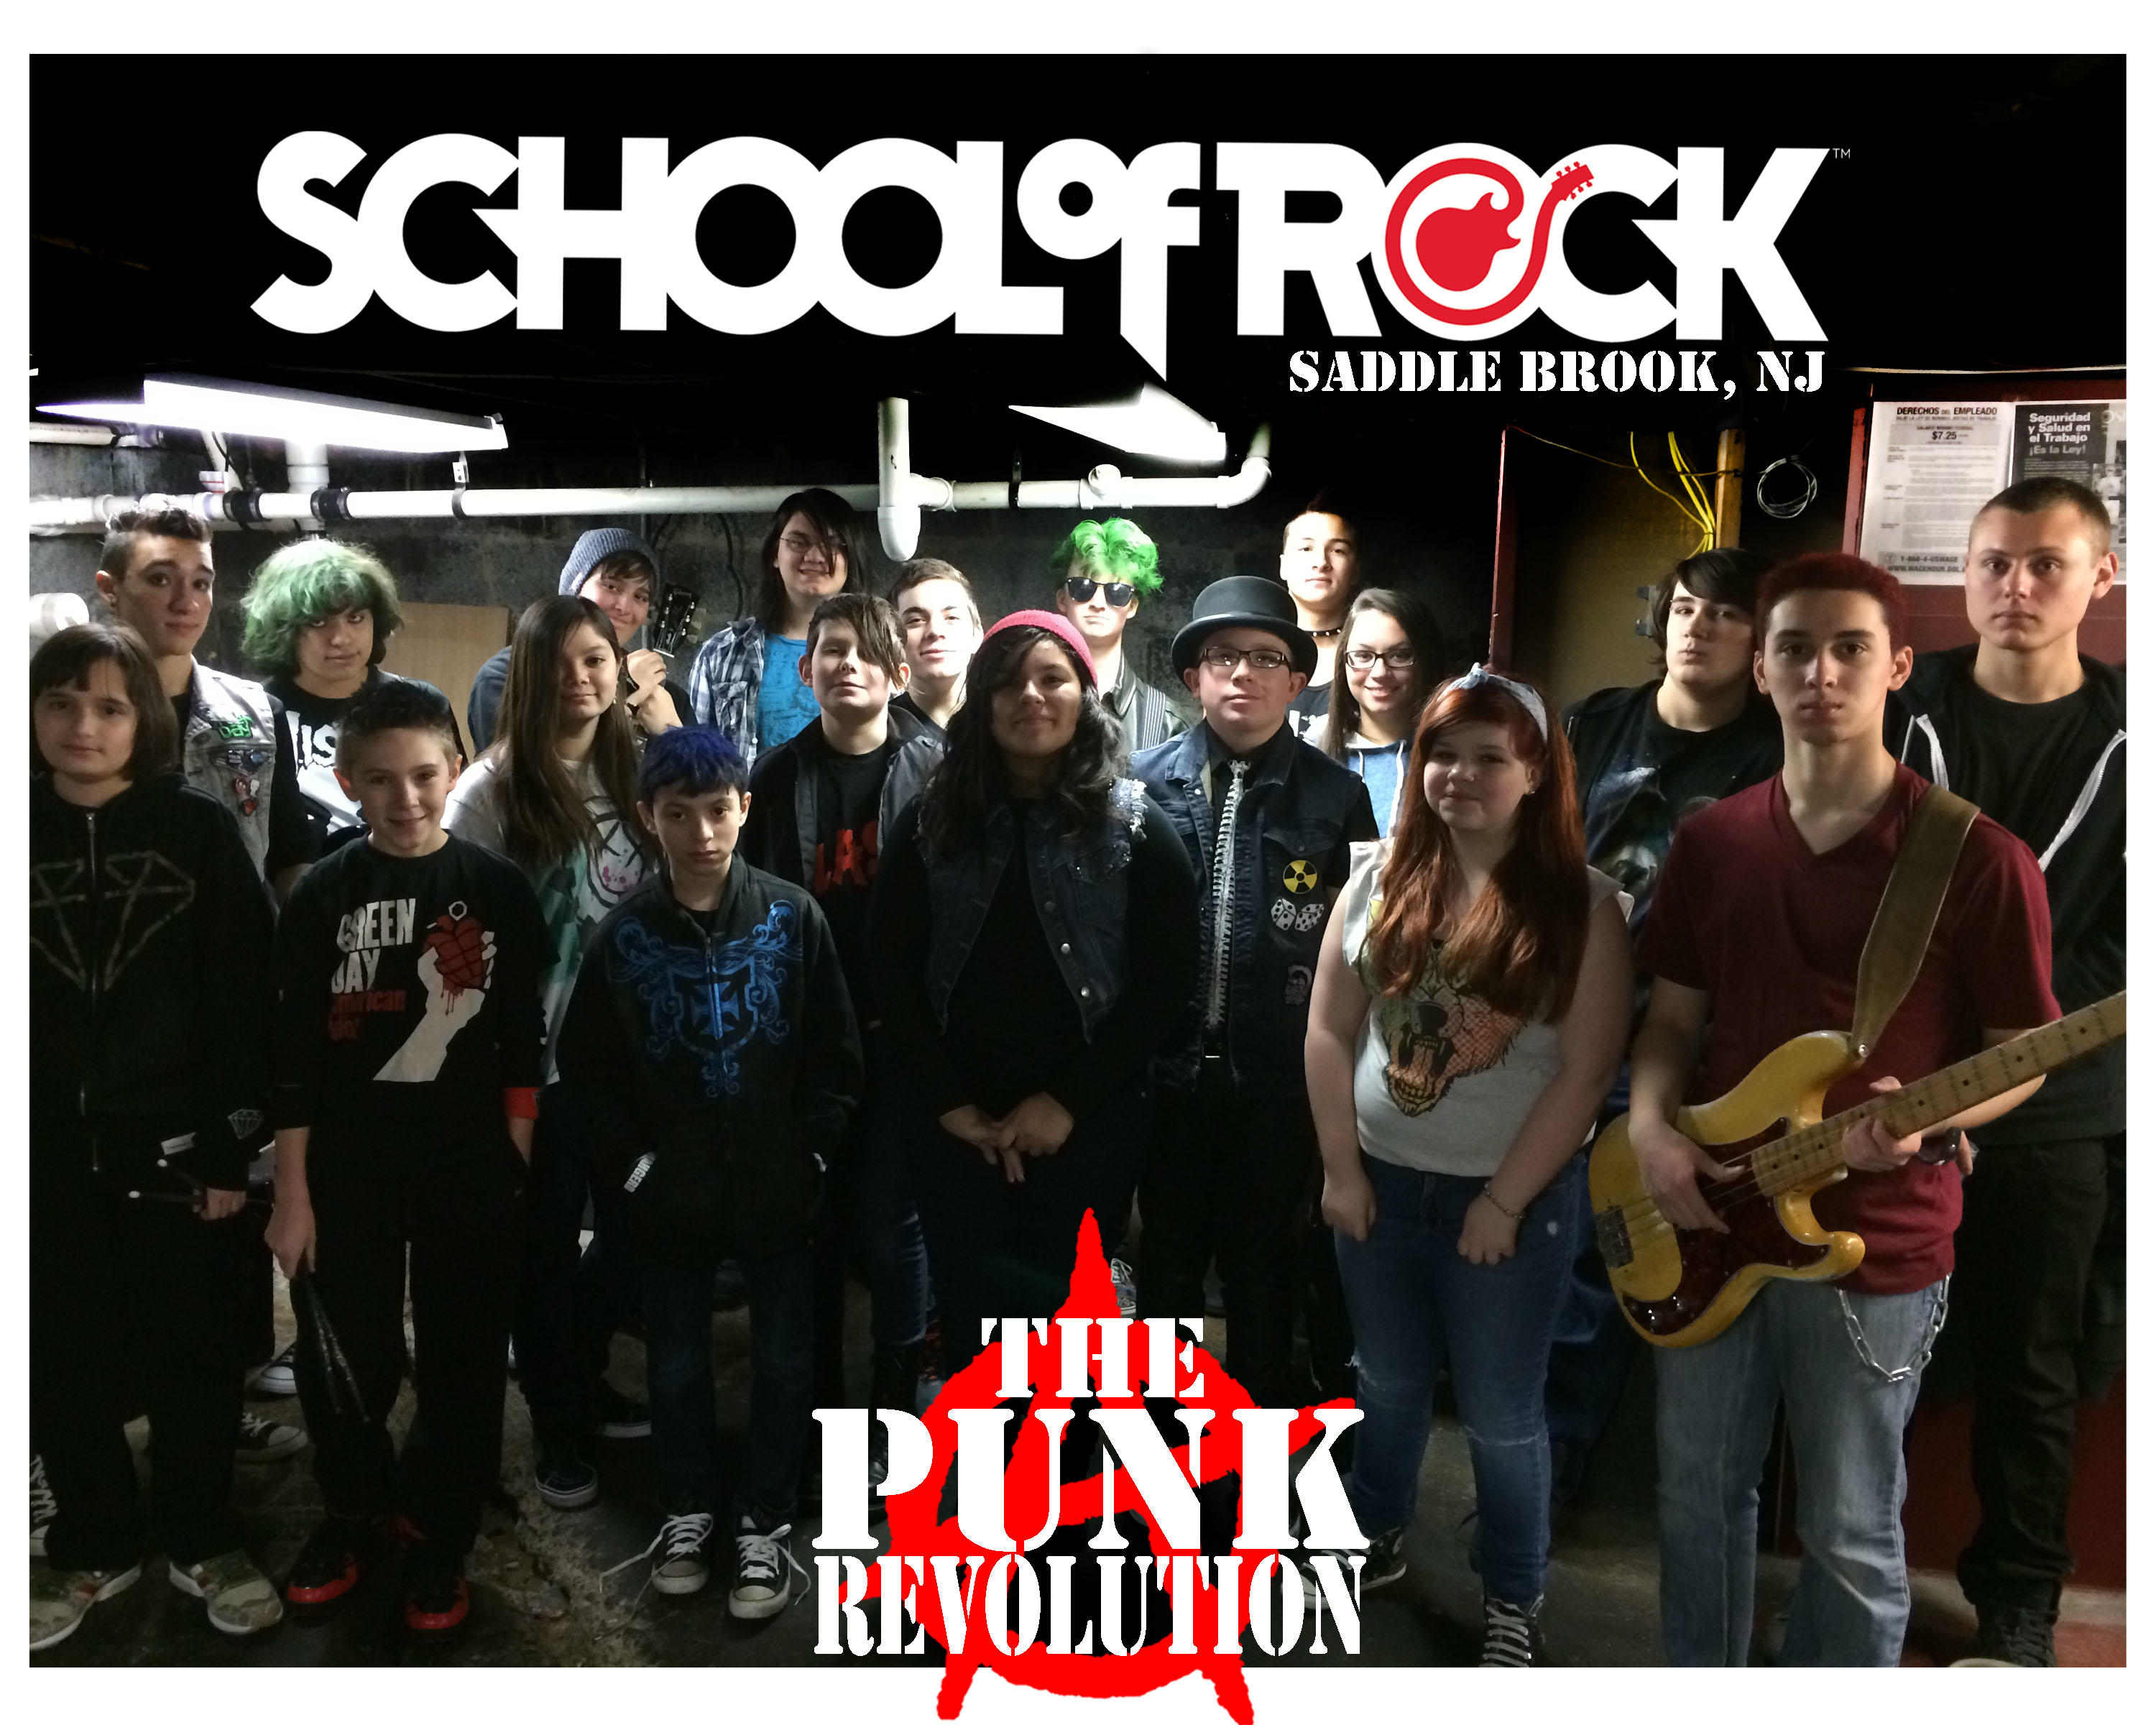 School of Rock Saddle Brook image 1